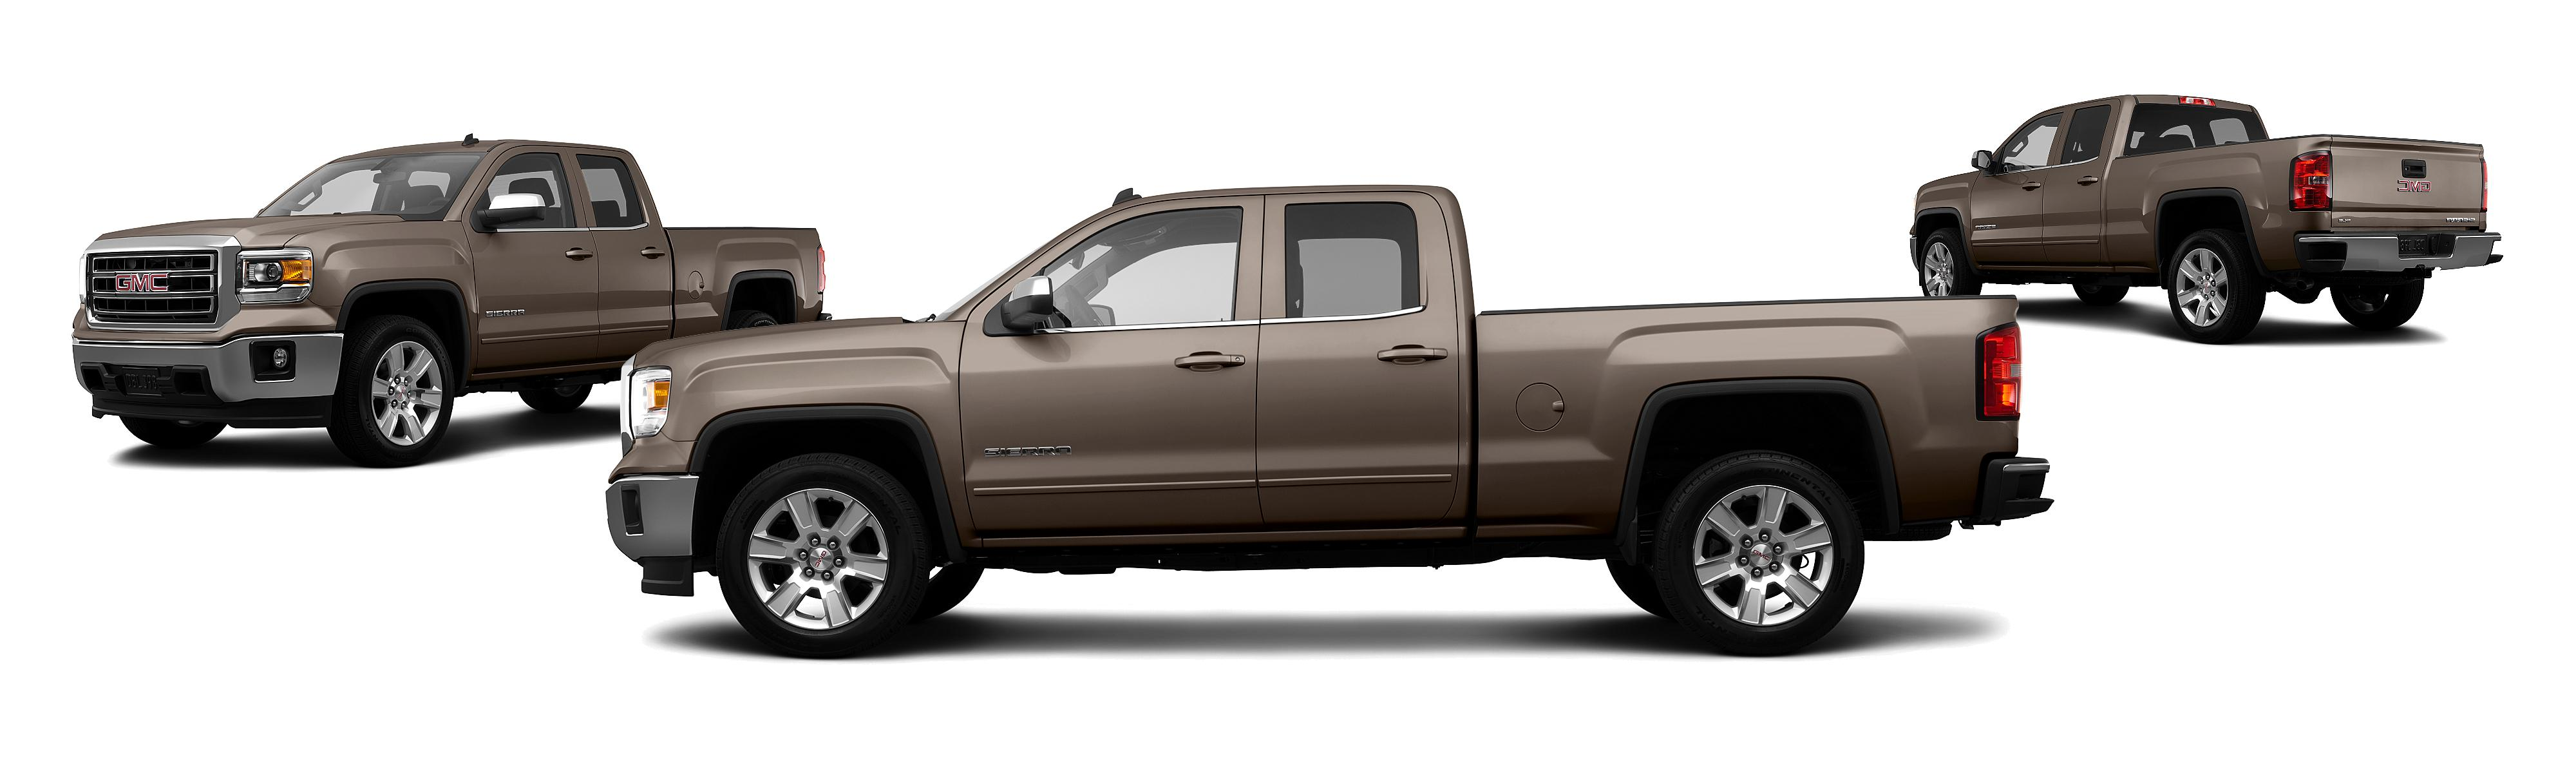 2014 Gmc Sierra 1500 4x4 Sle 4dr Double Cab 6 5 Ft Sb Research Groovecar